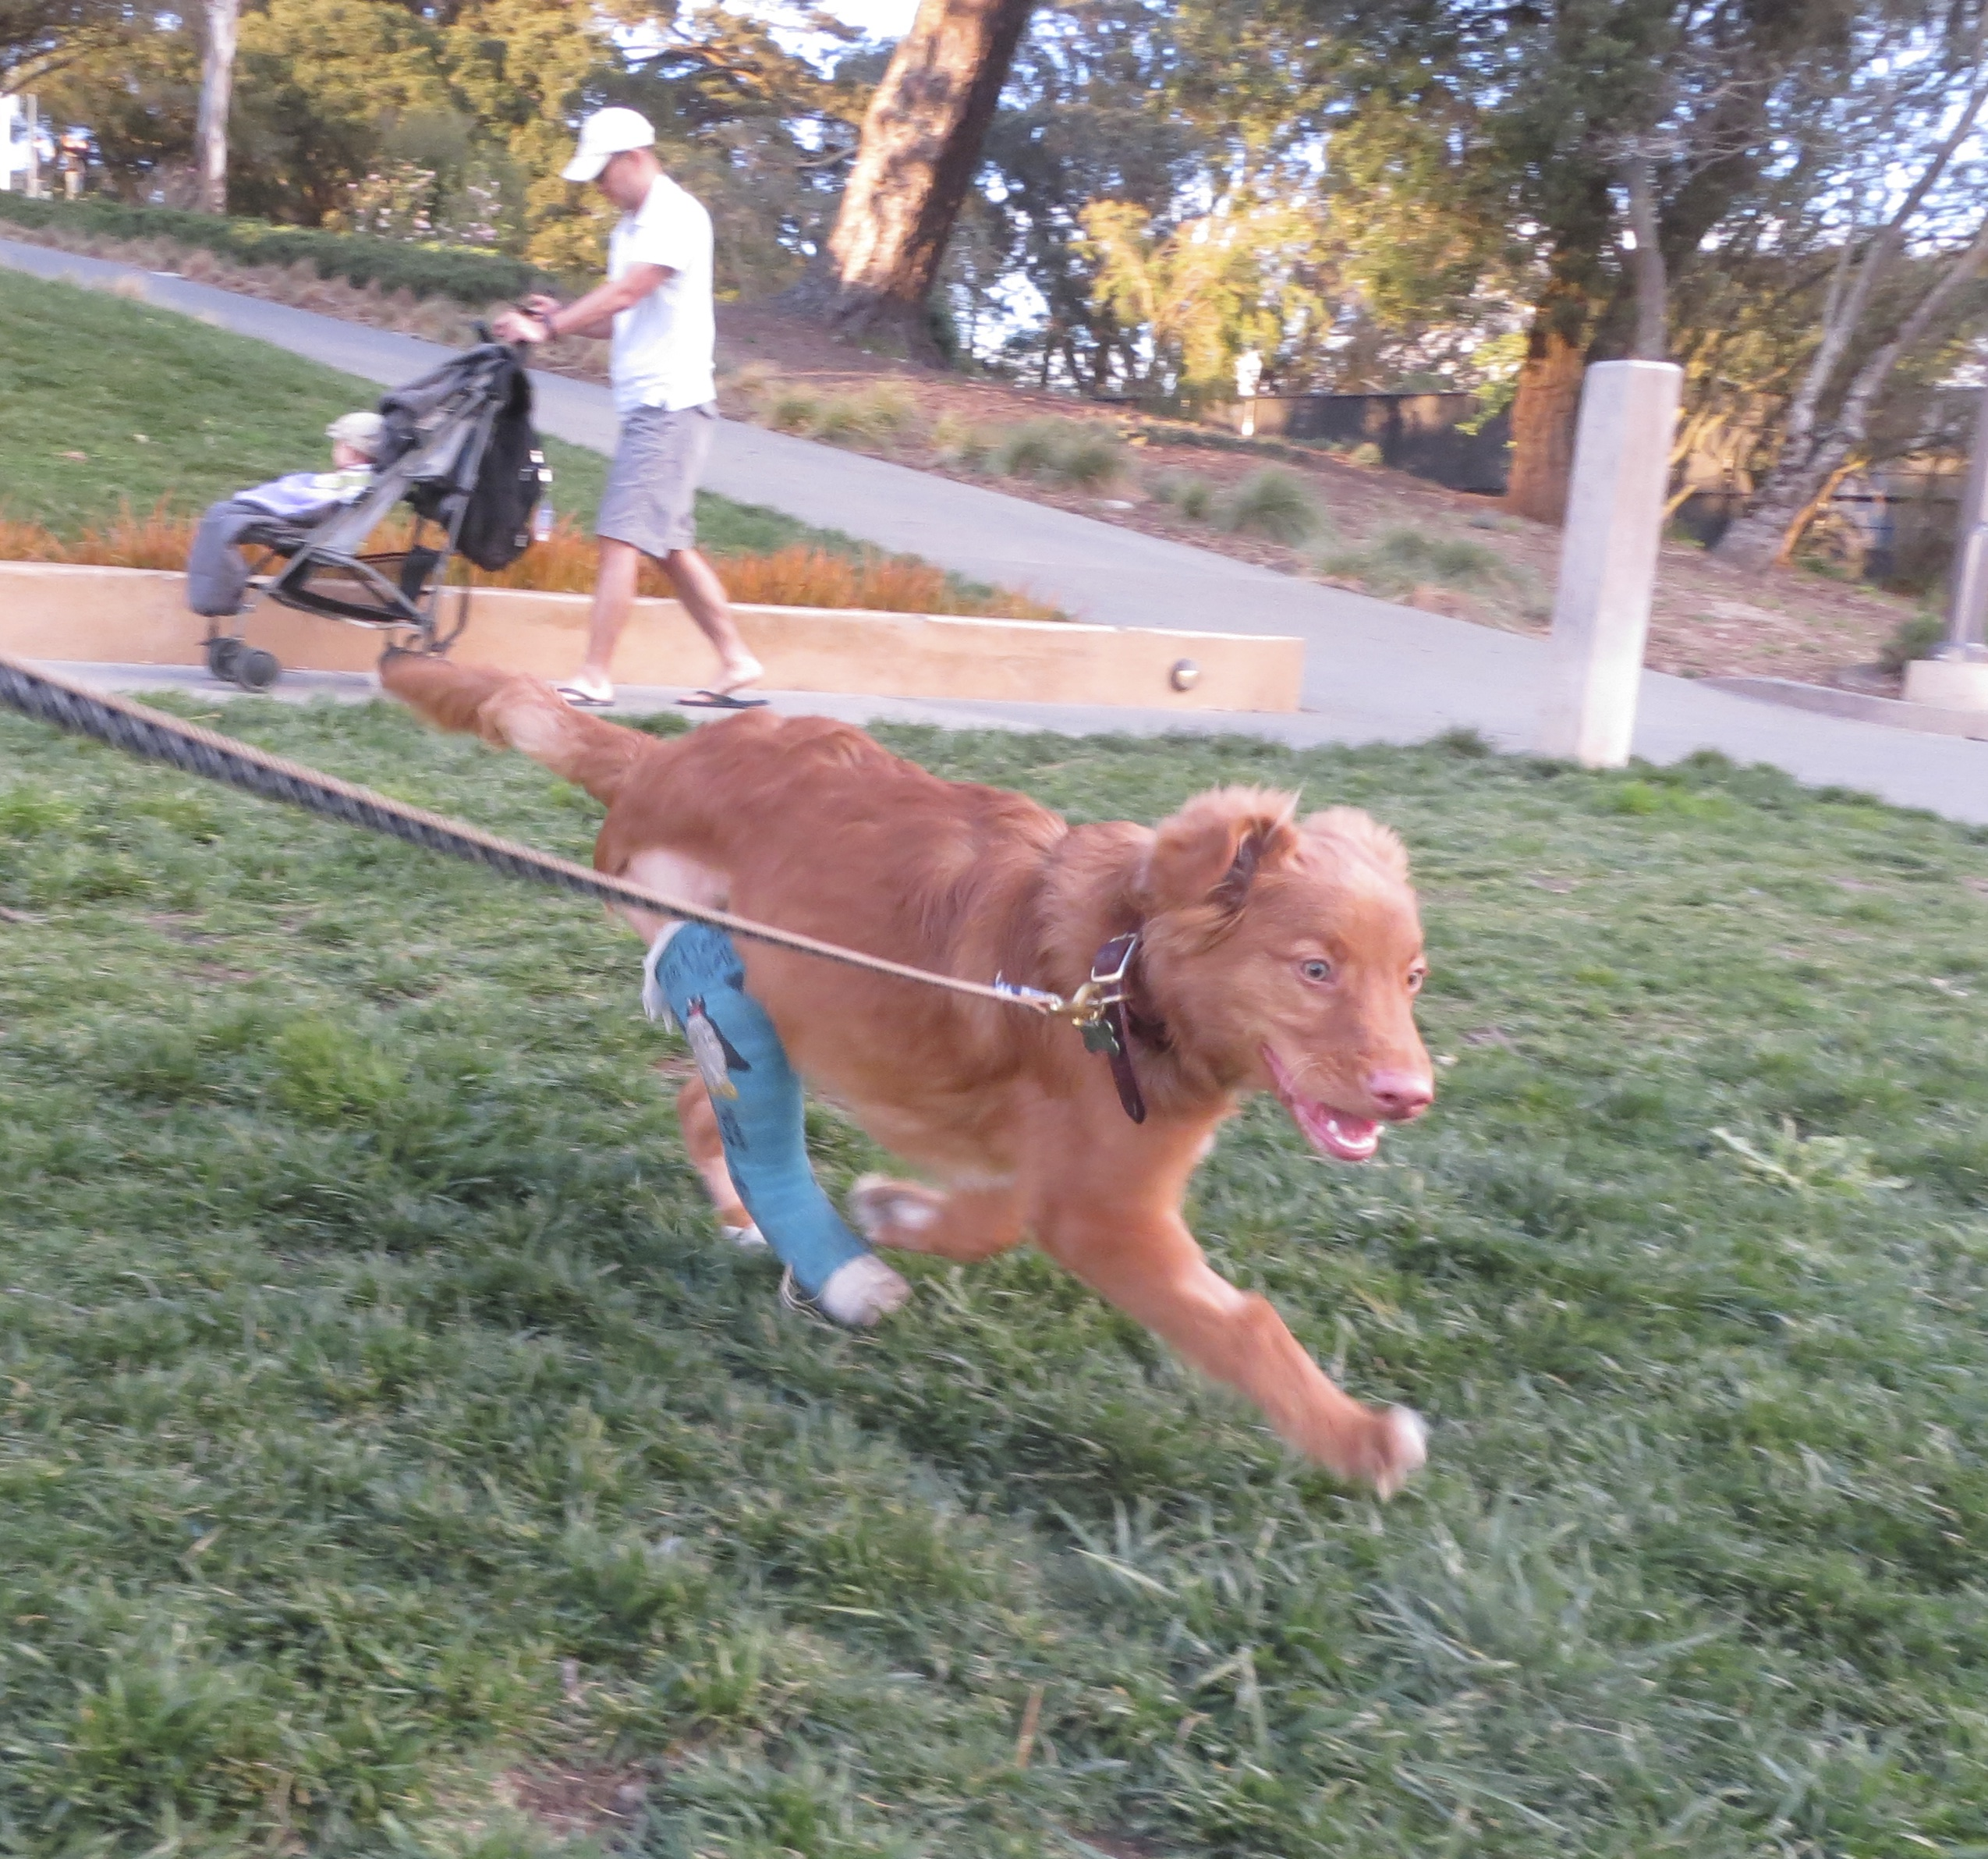 Nova Scotia Duck-Tolling Retriver Puppy With A Blue Cast On One Leg Running And Looking Happy